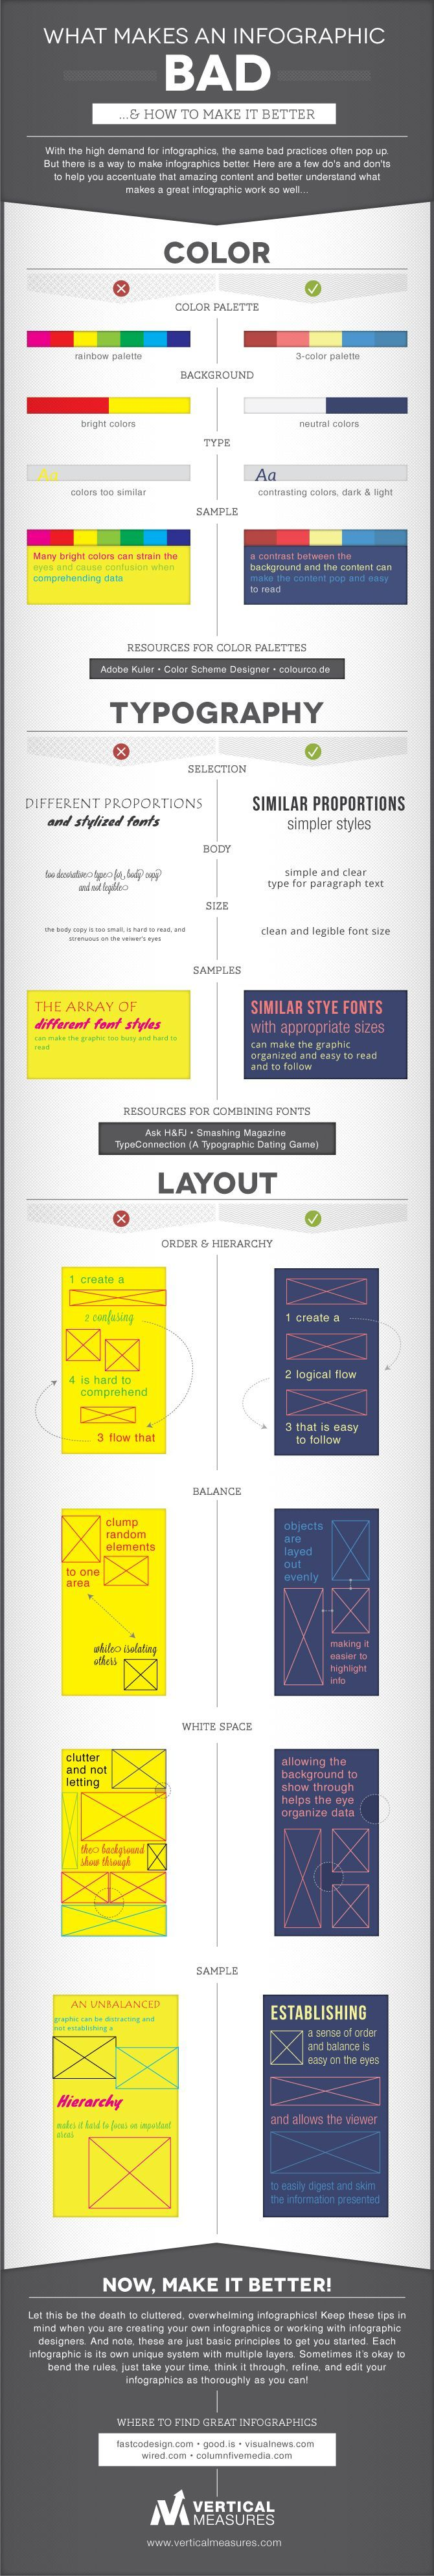 Digital Information World: Infographics Dos and Donts: Basic Principles To Get Start With Infographics